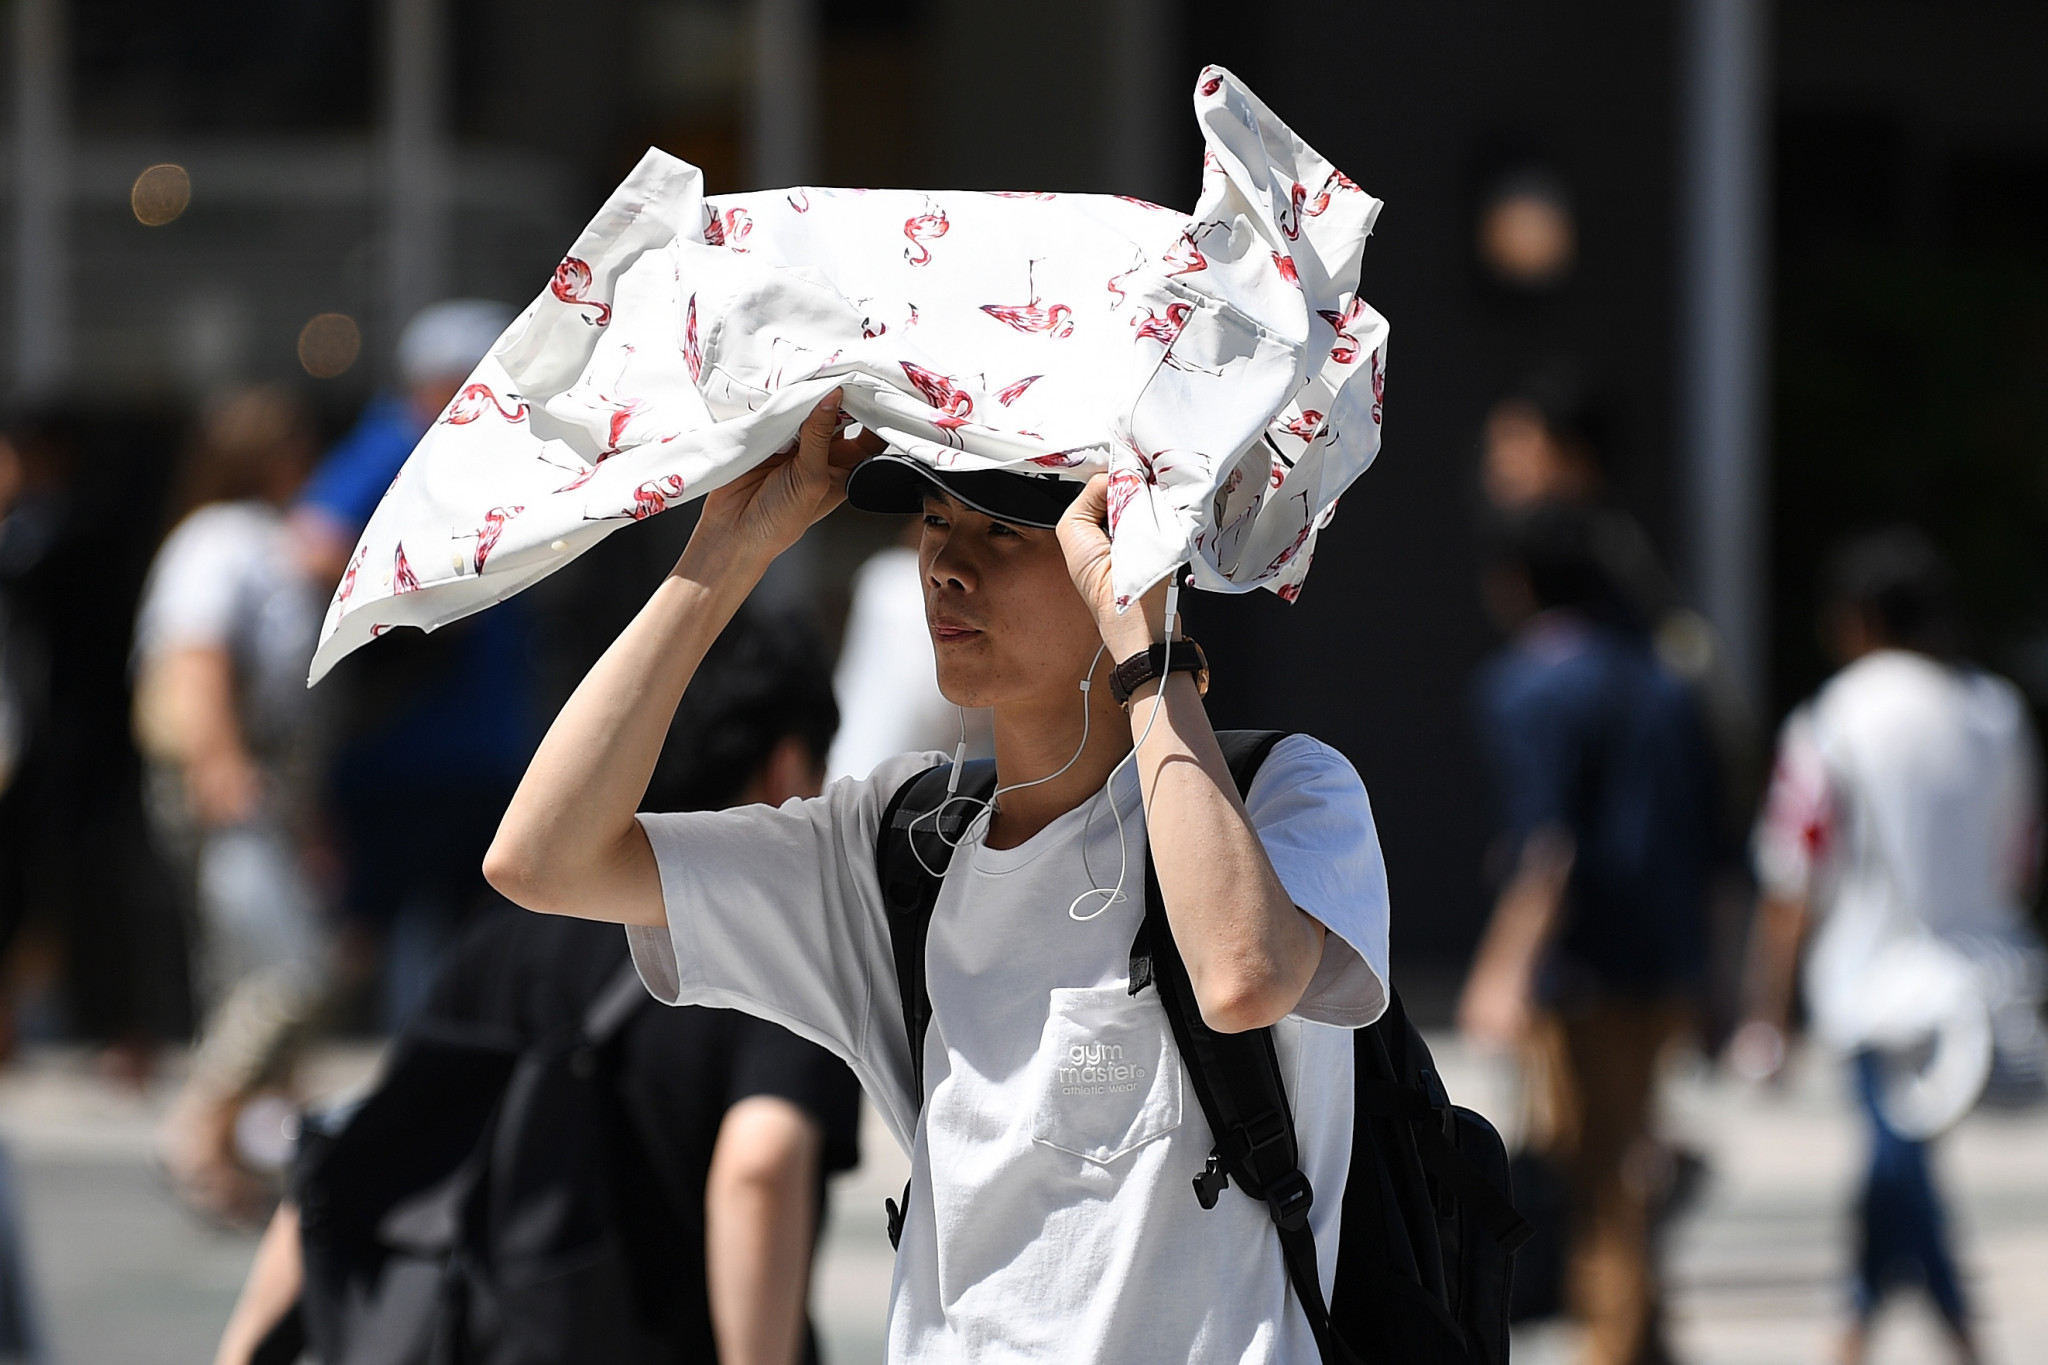 Japanese Government to create heatstroke prevention group amid Tokyo 2020 temperature concerns